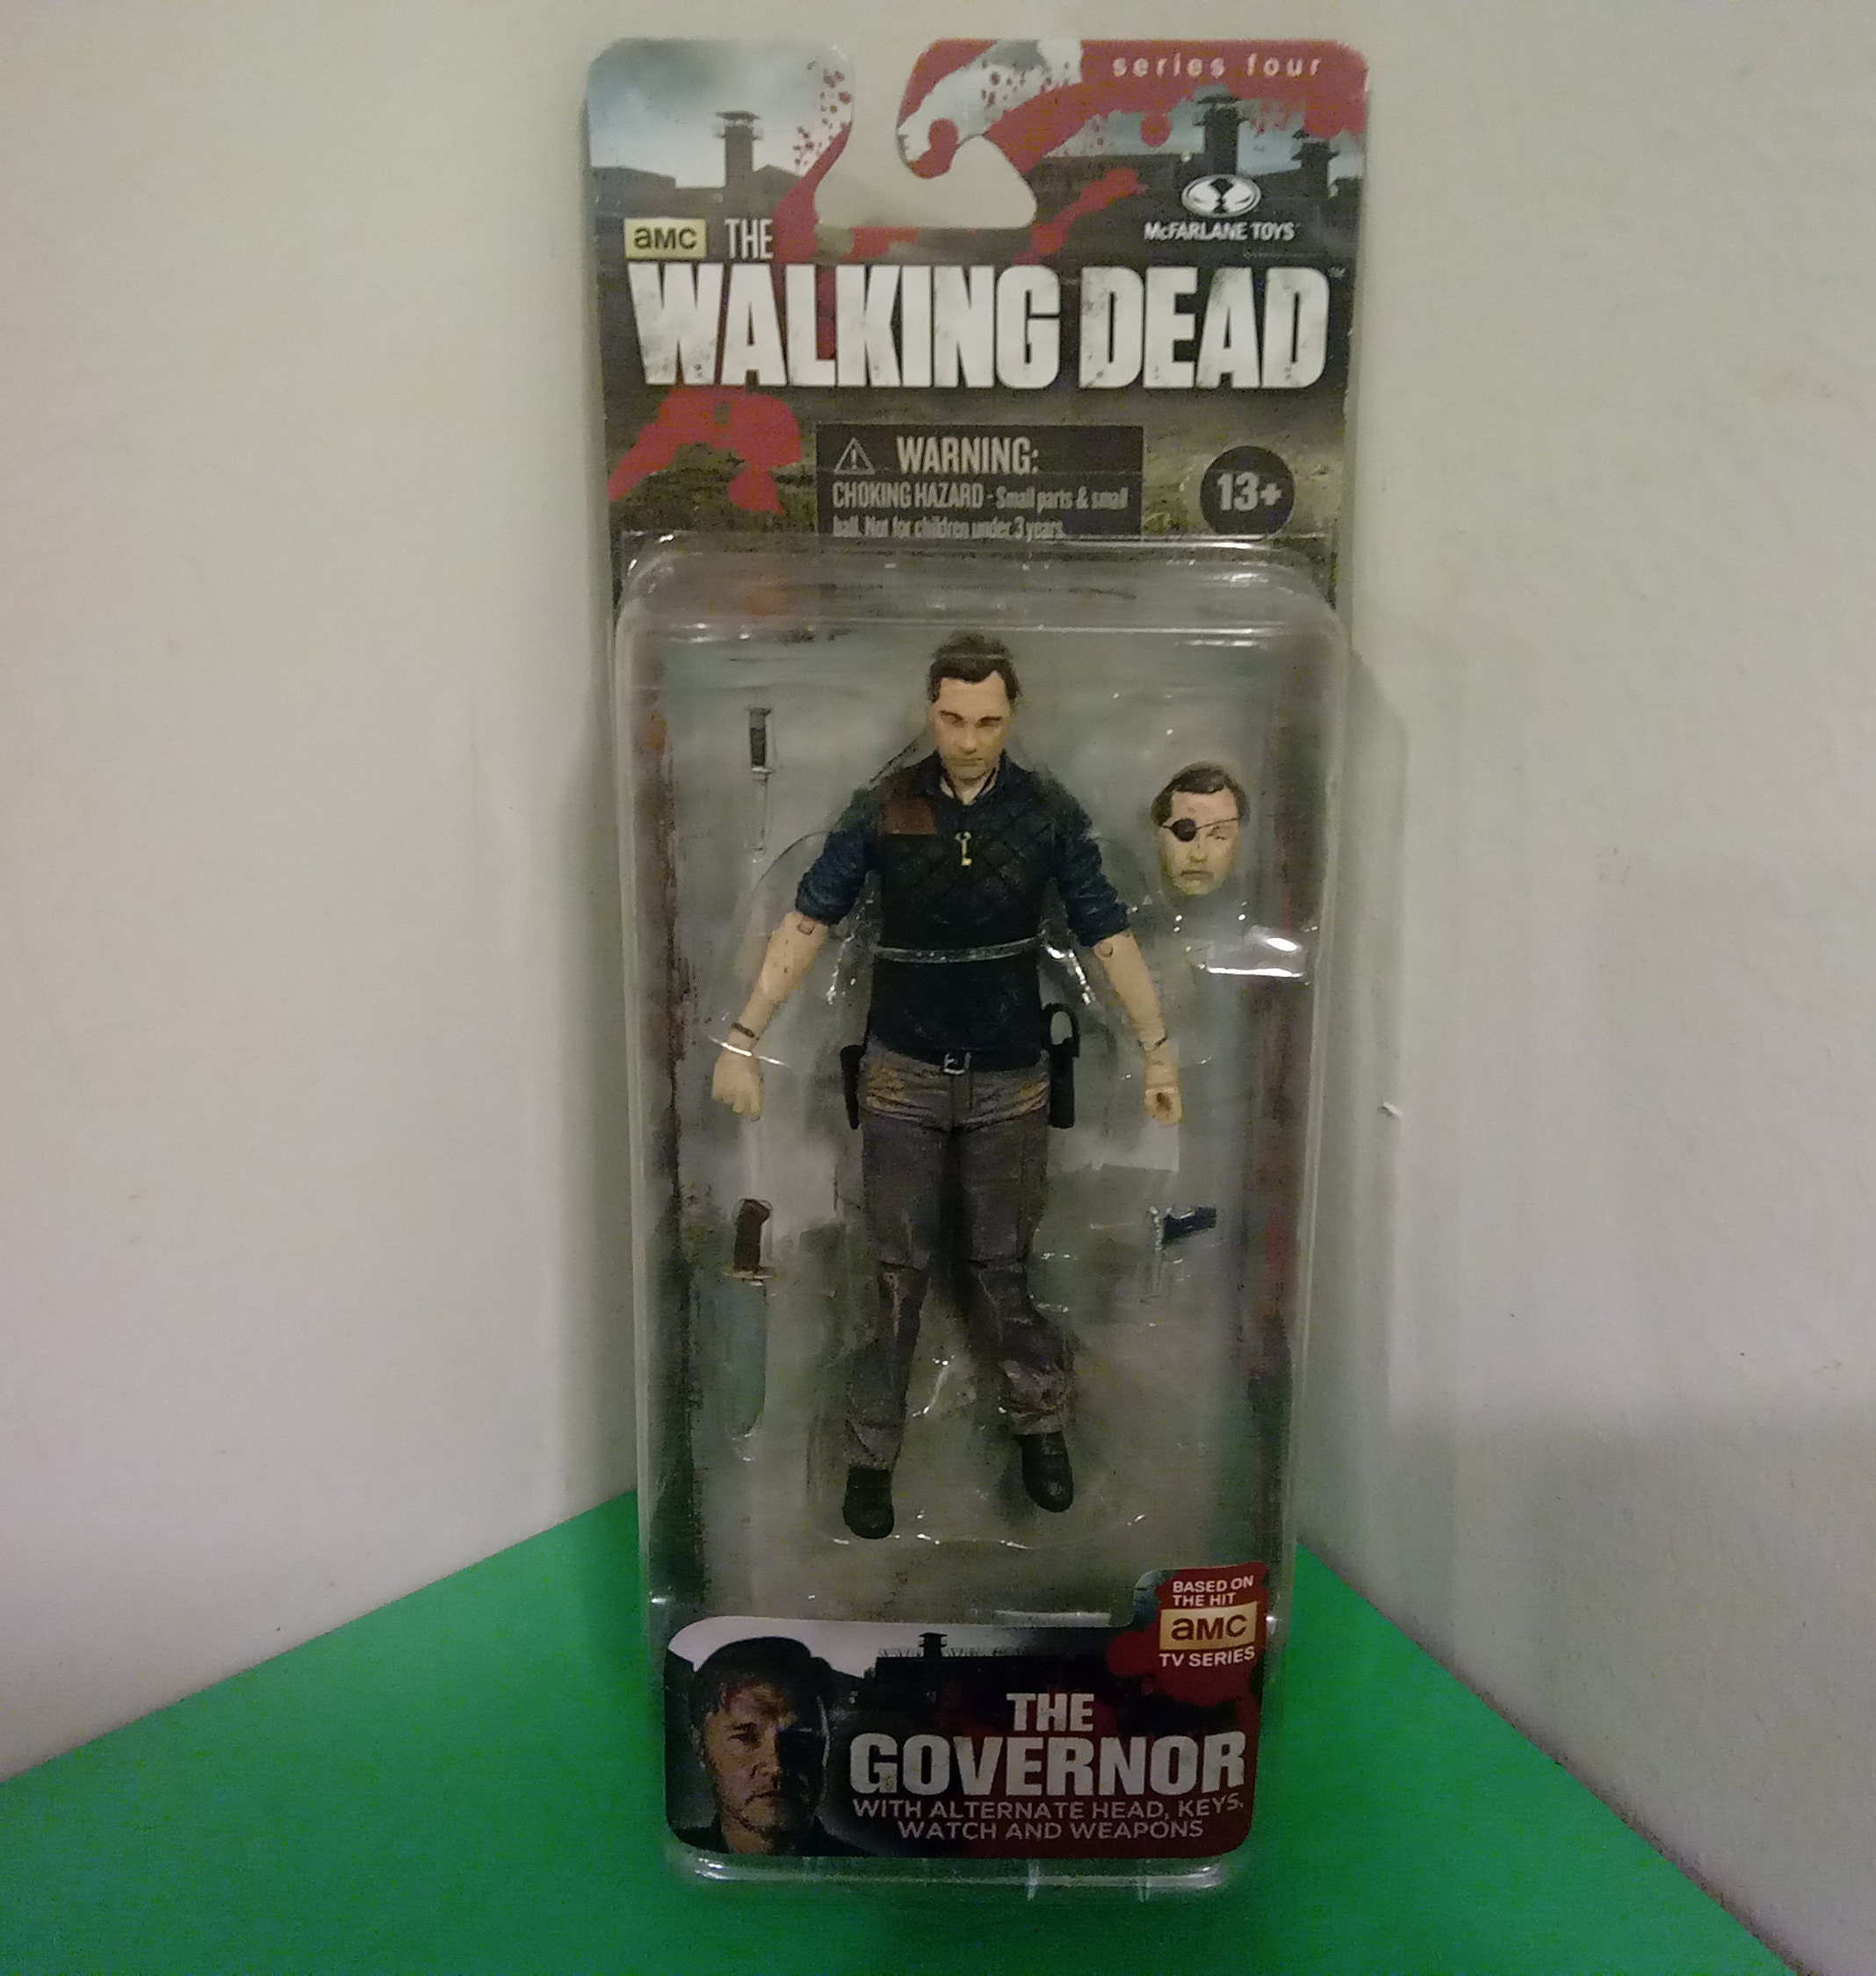 Brand New! McFarlane Toys Walking Dead Series 4 The Governor Action figure